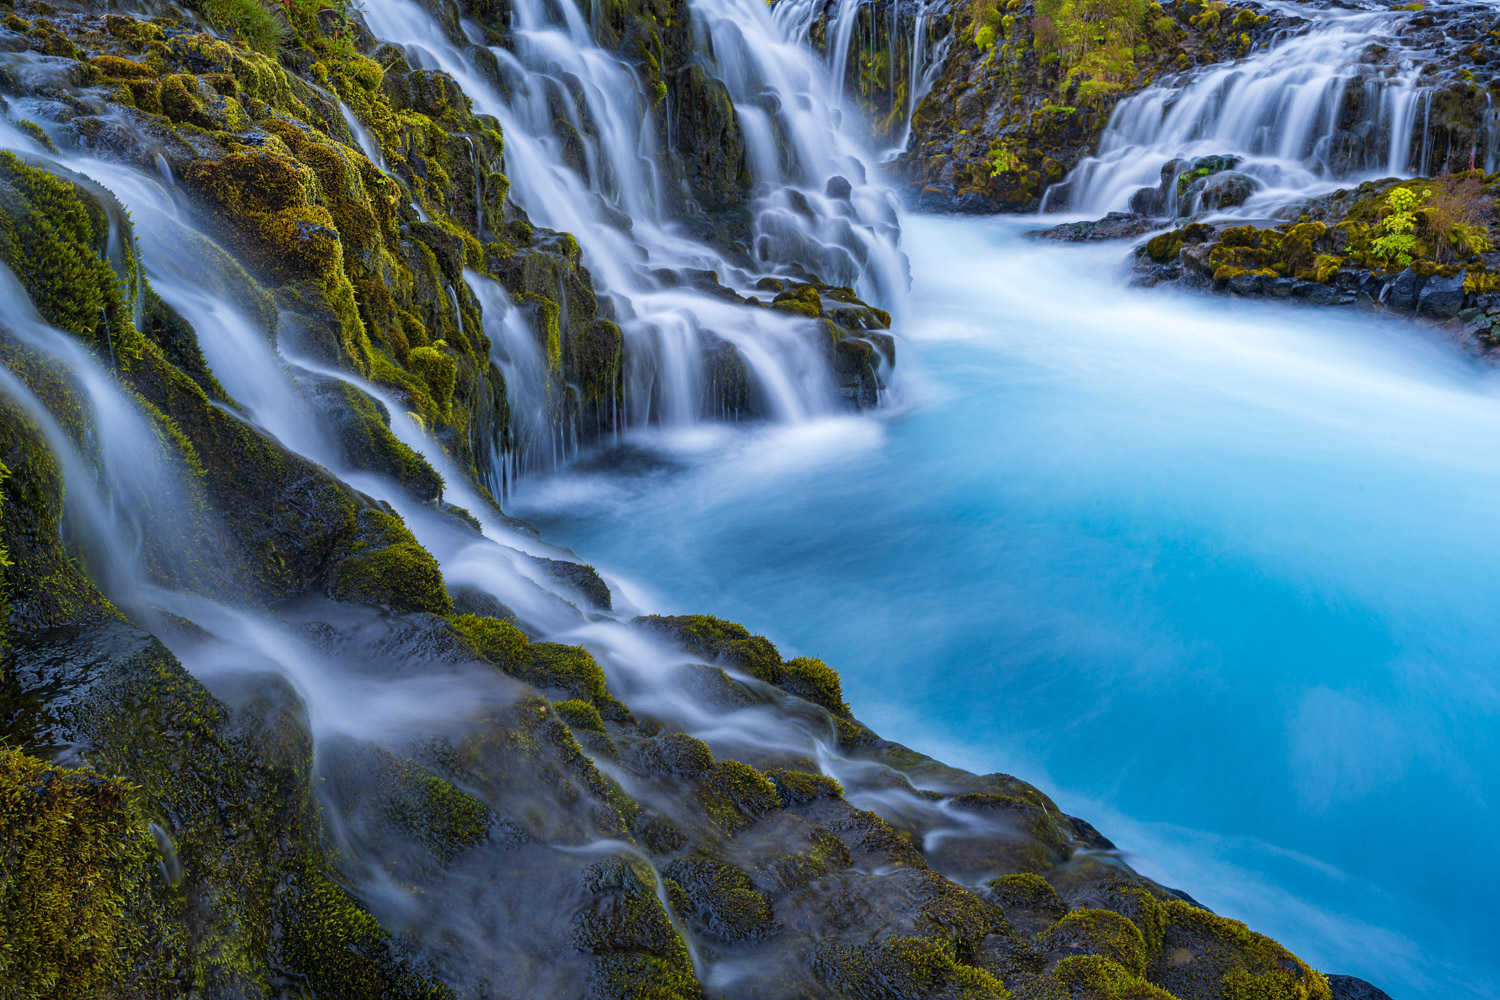 Bruarfoss Waterfall in Iceland photographic print for sale.